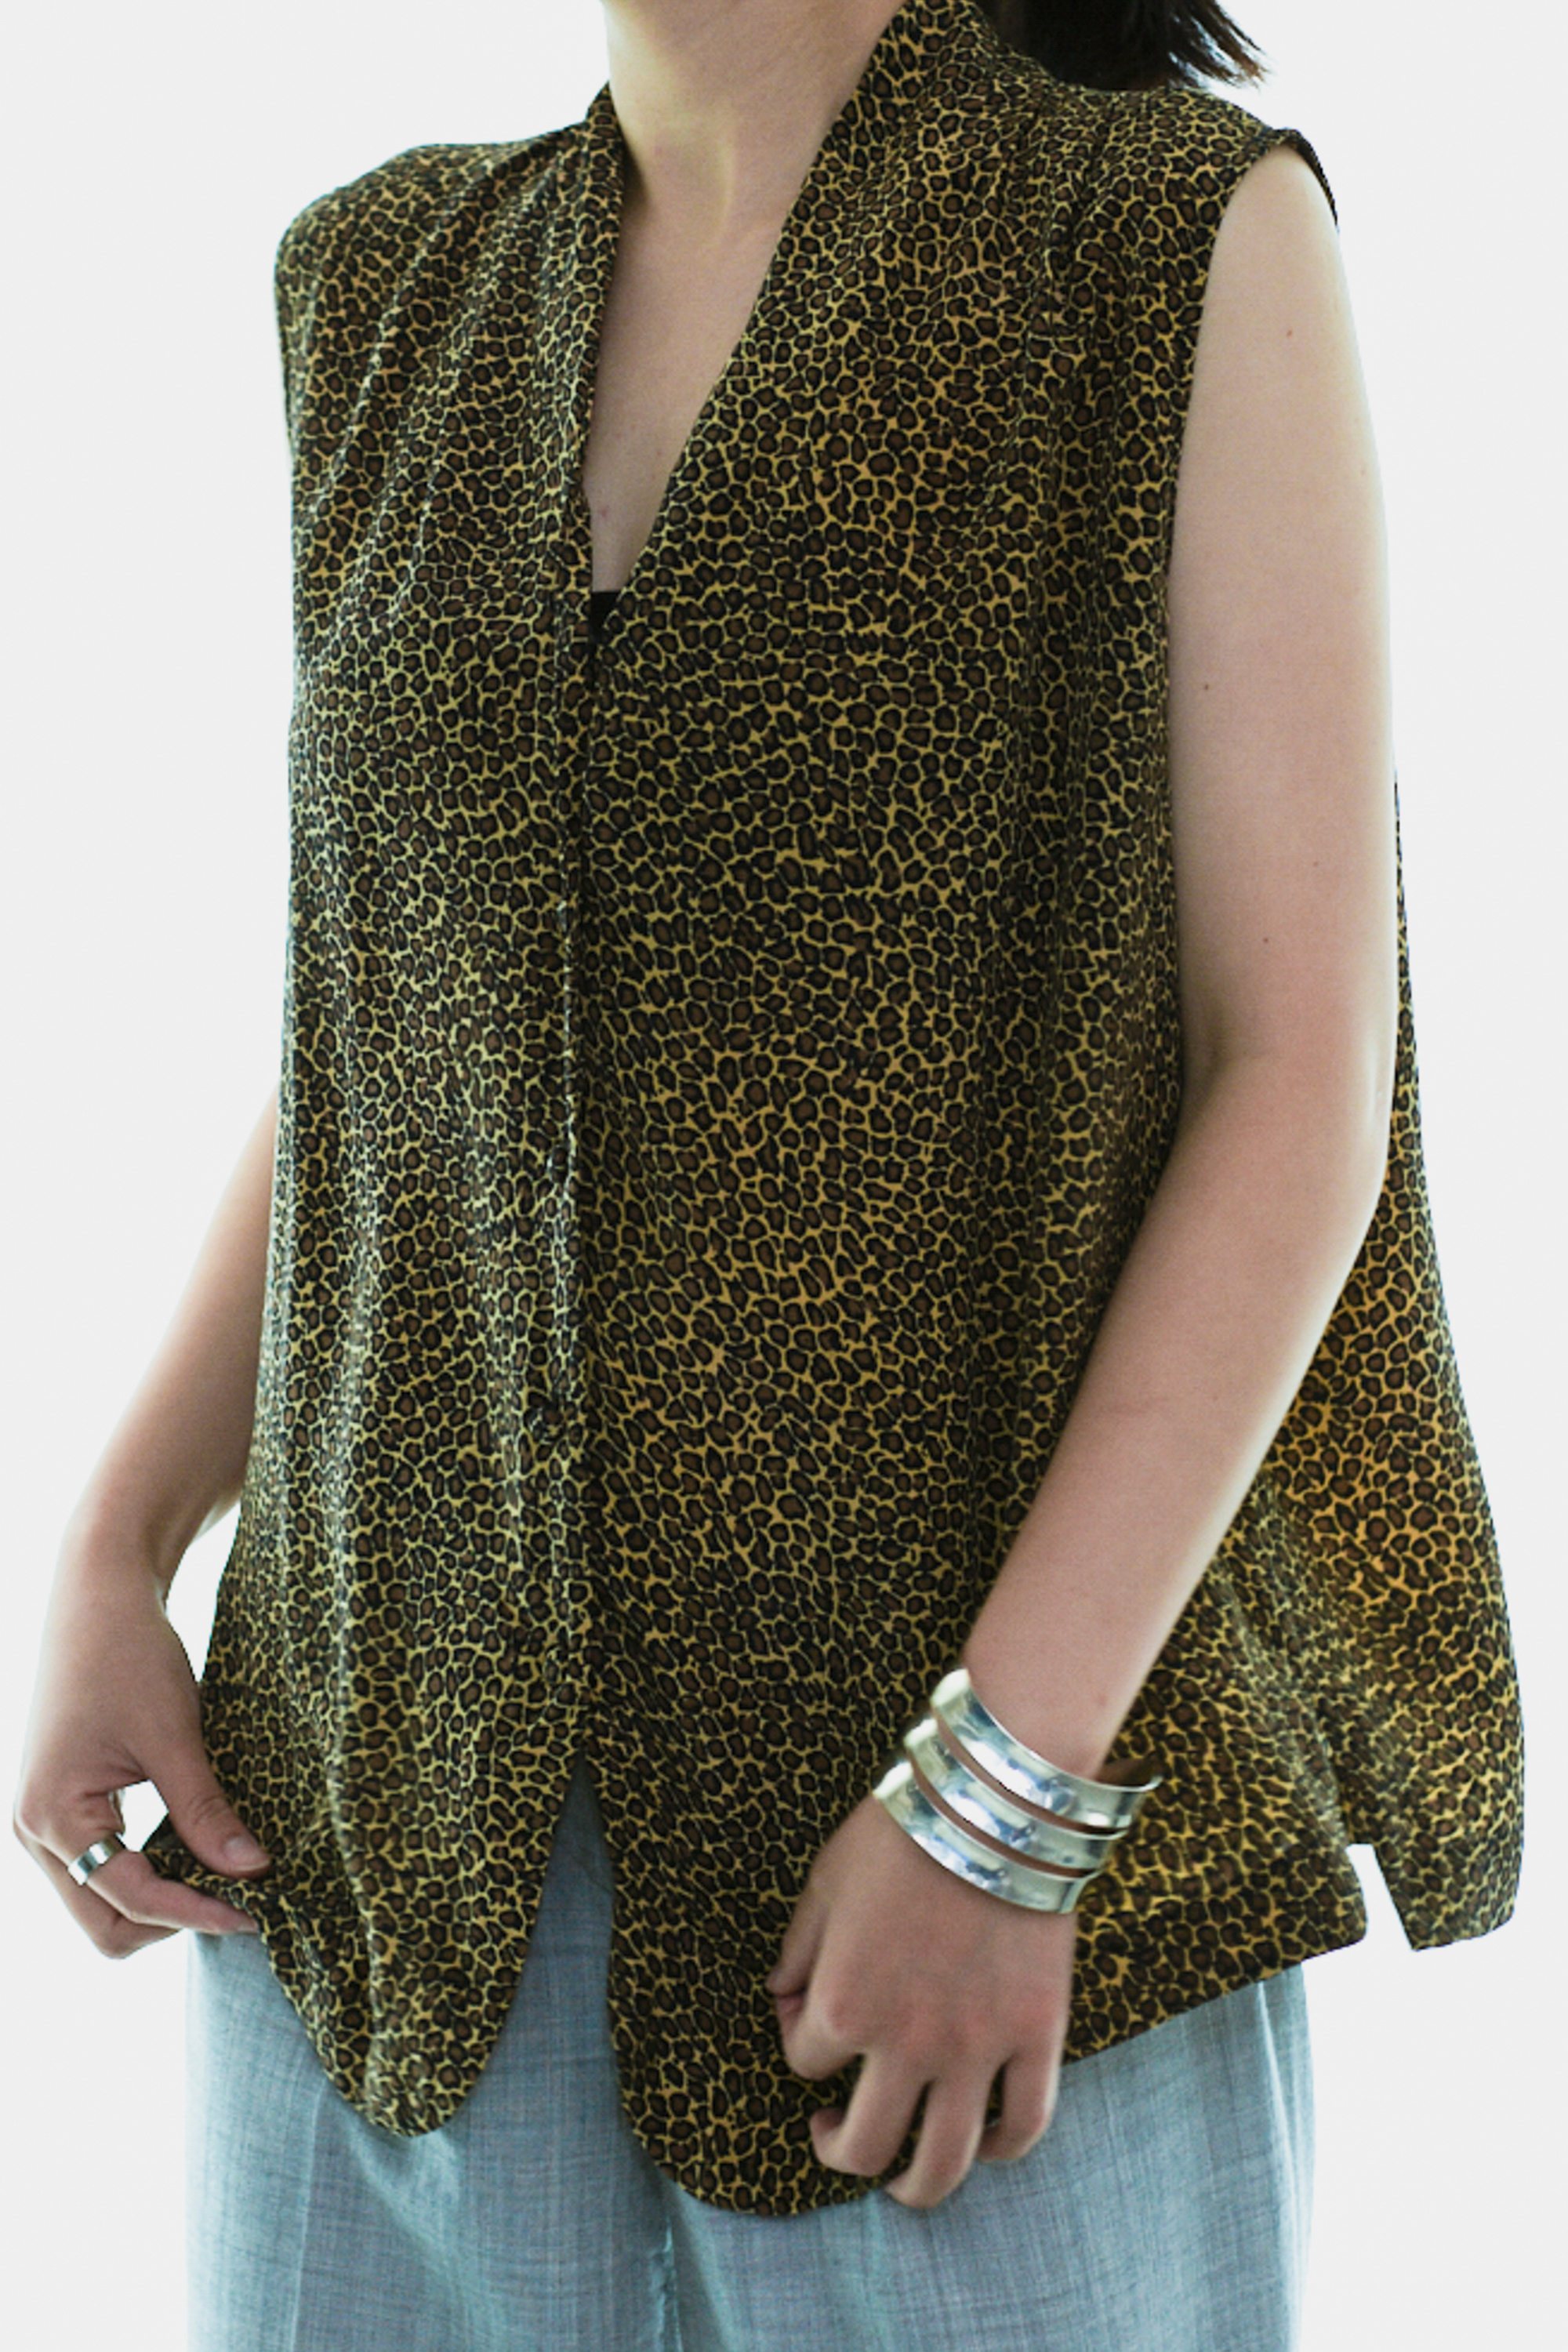 70's Leopard Pattern Non-Sleeve Tops